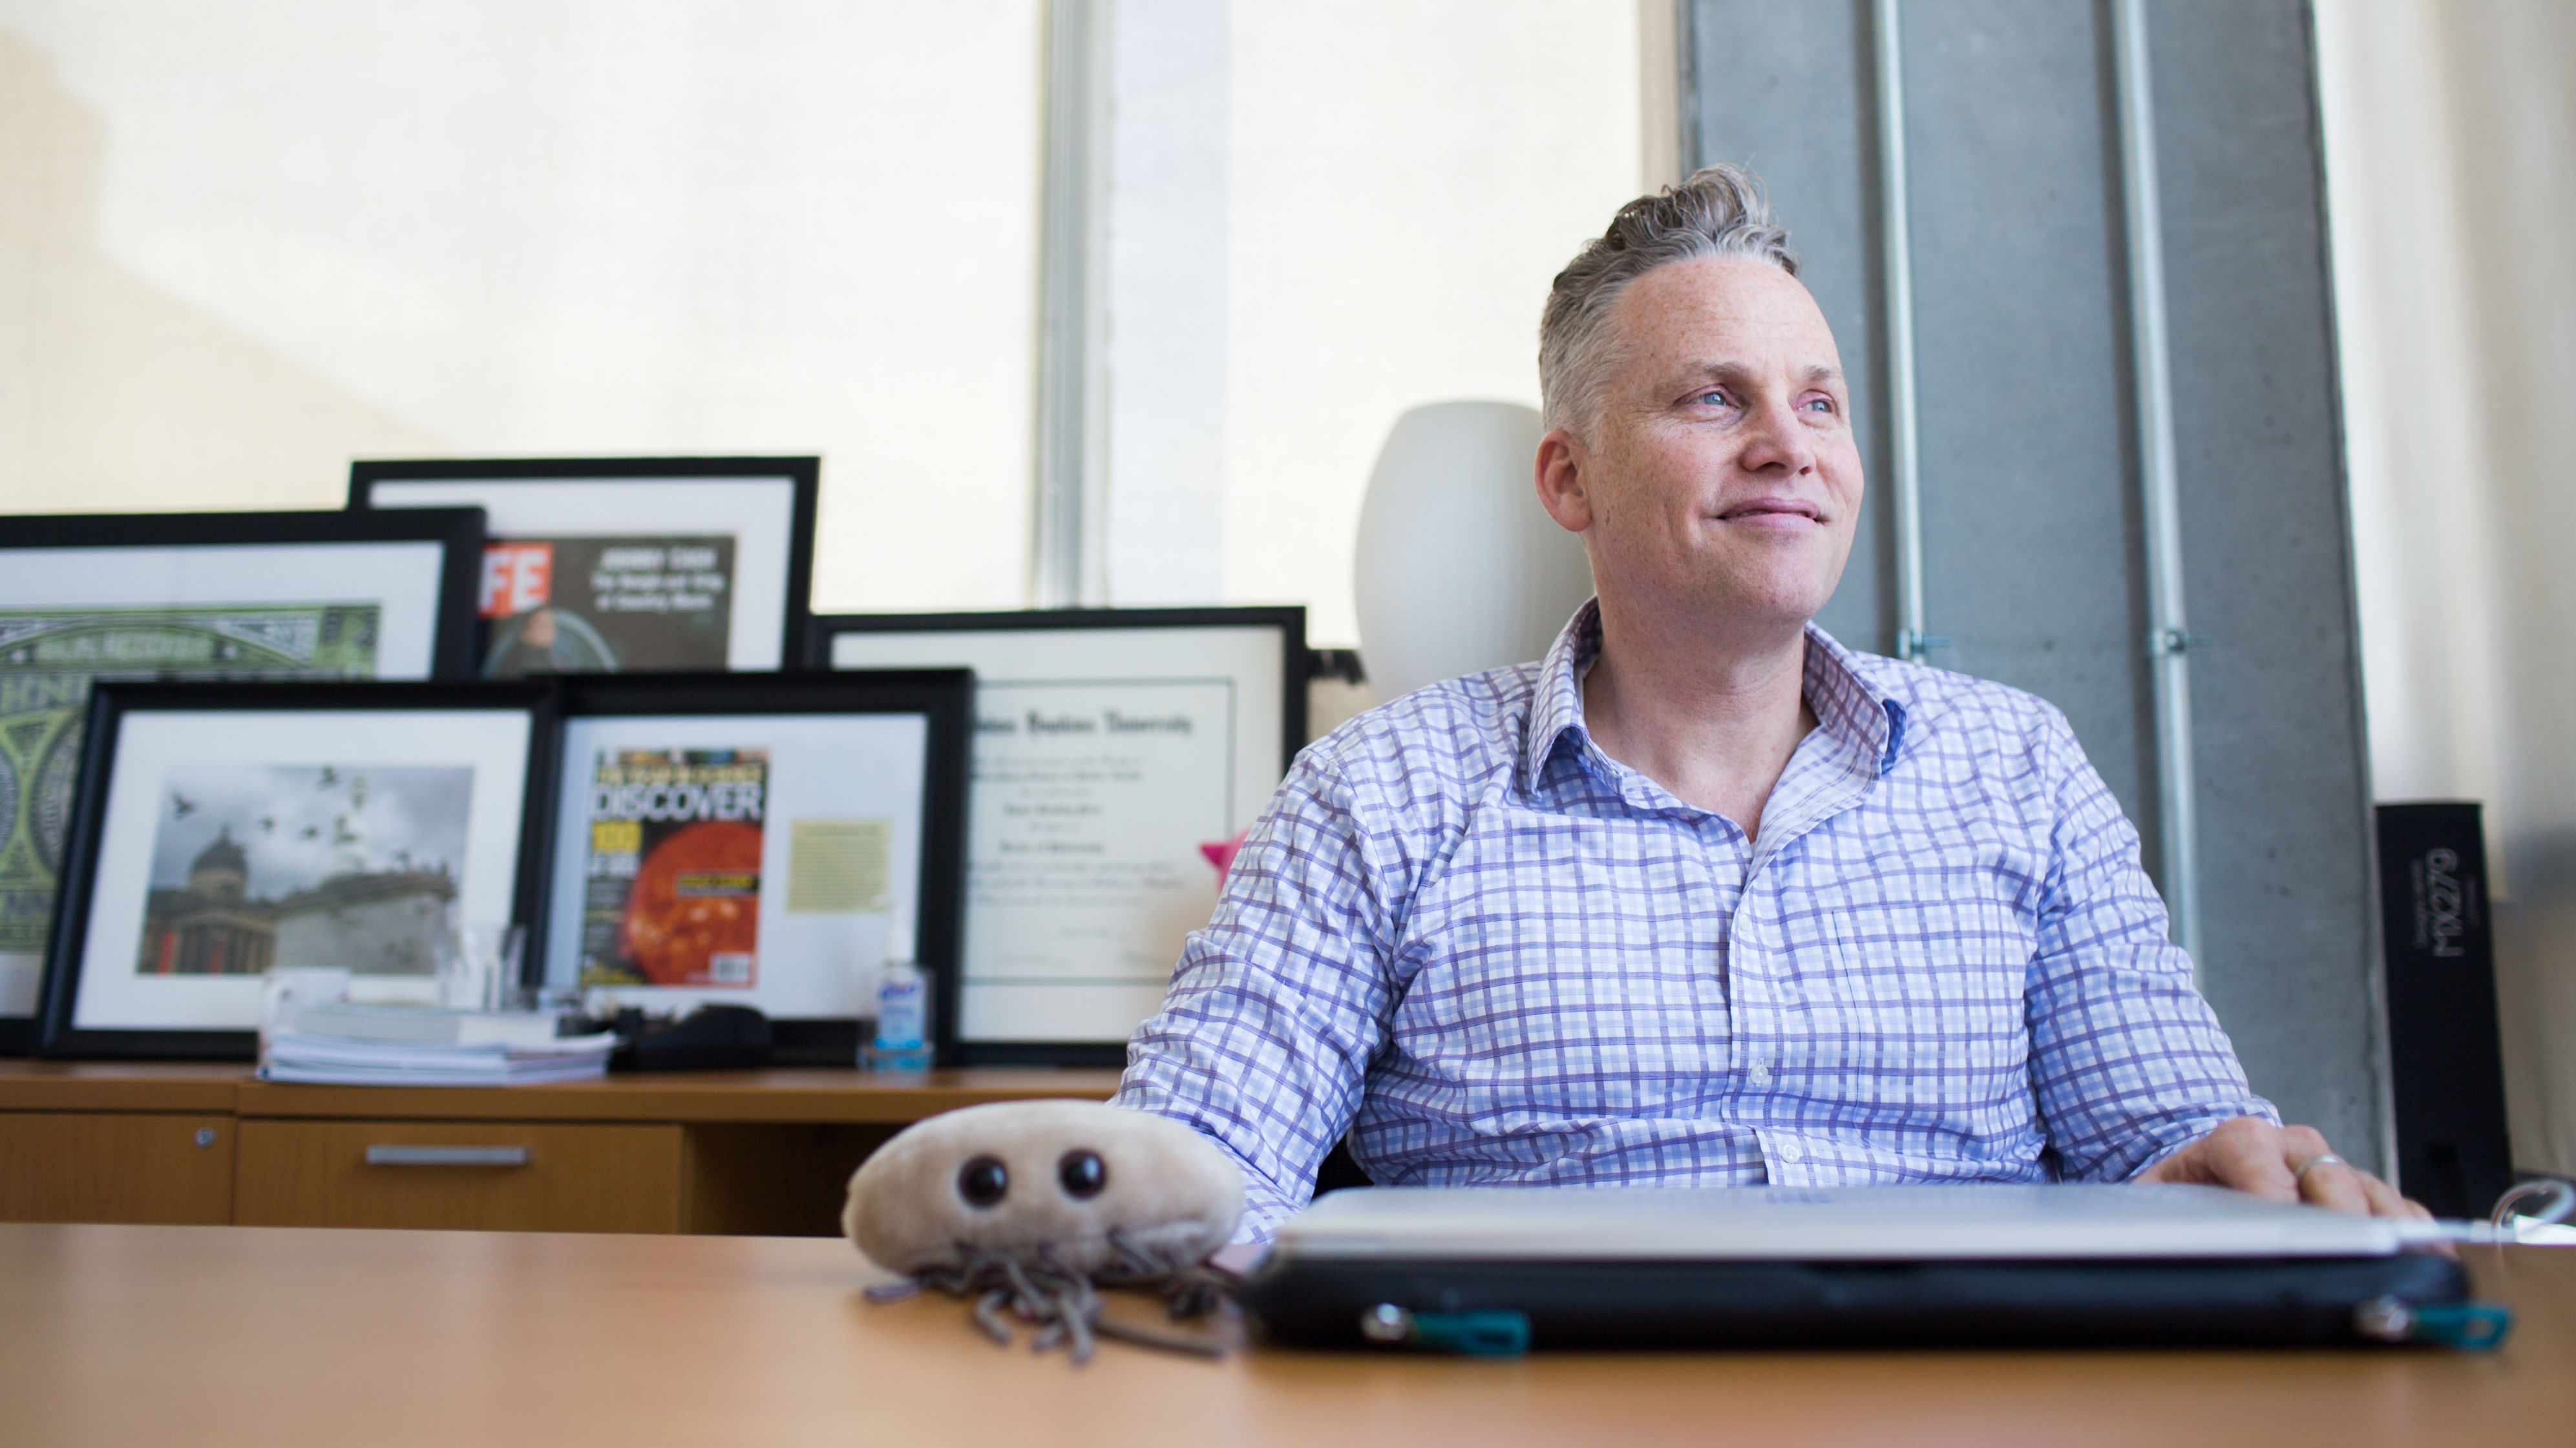 Lance Price sits at his desk with a plush E. coli